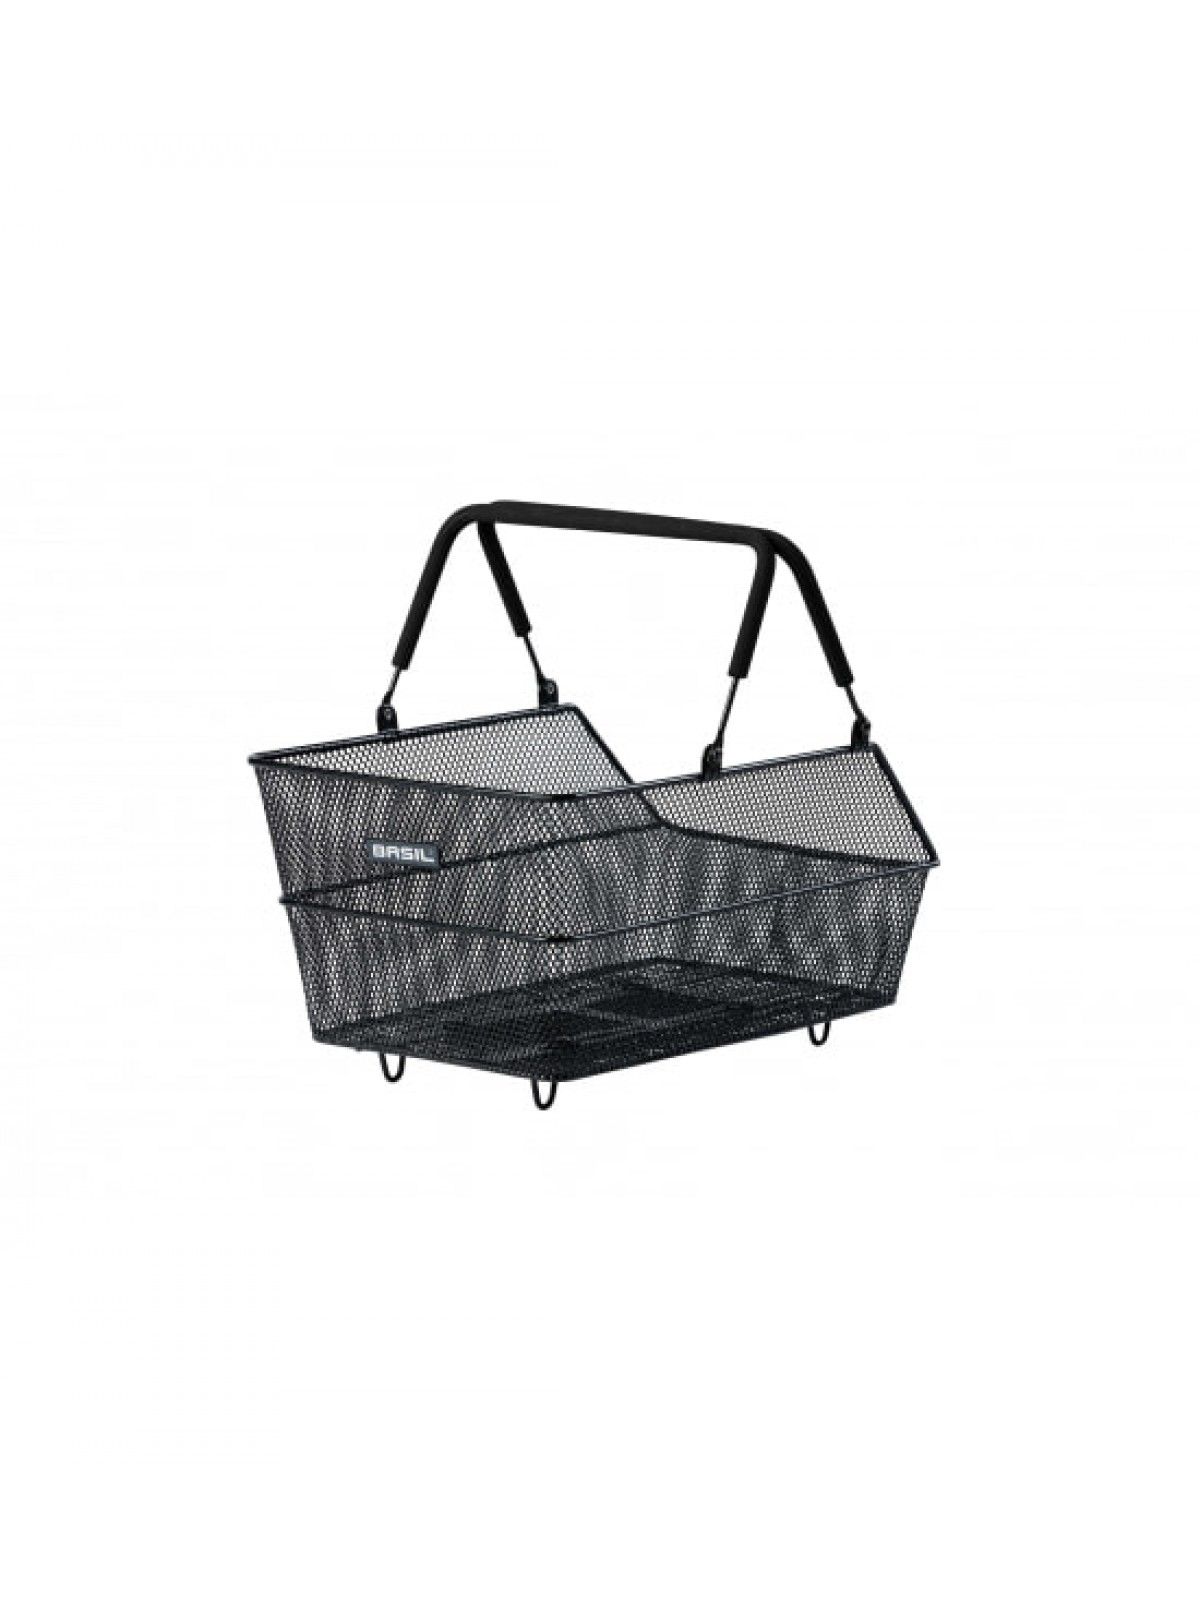 Rear basket Basil Cento M + adapter MIK